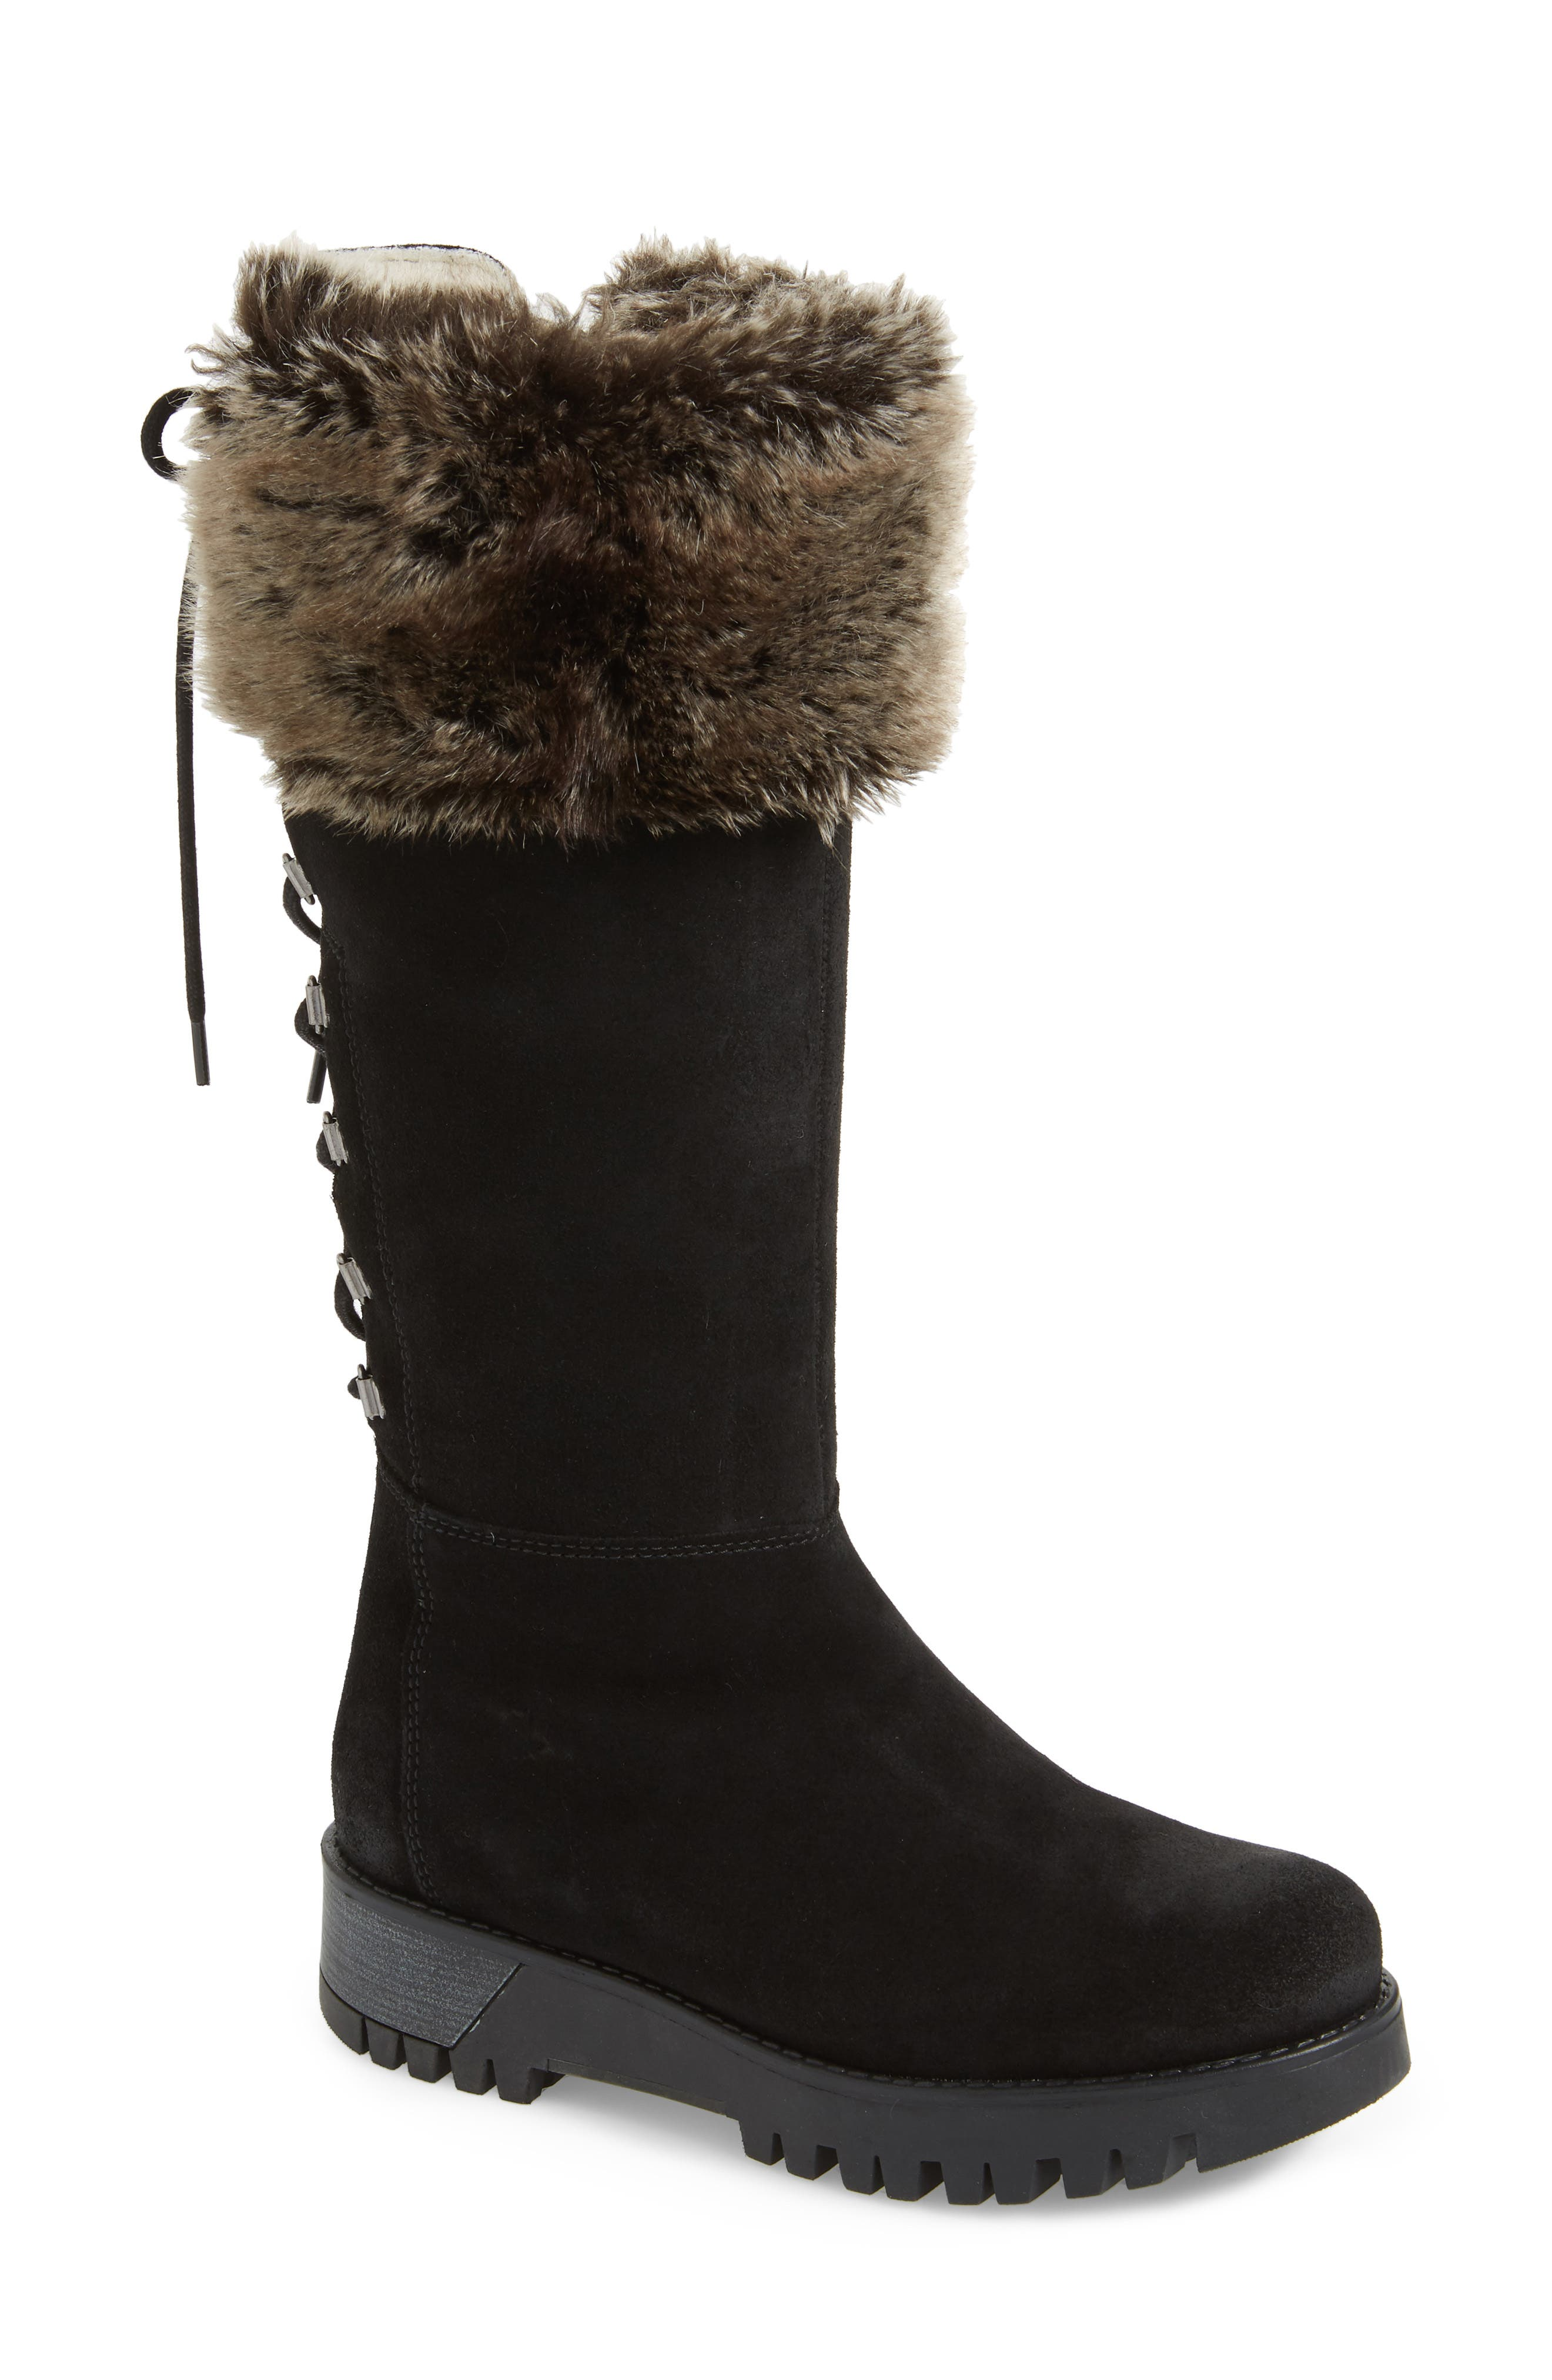 BOS. & CO., Graham Waterproof Winter Boot with Faux Fur Cuff, Main thumbnail 1, color, BLACK SUEDE